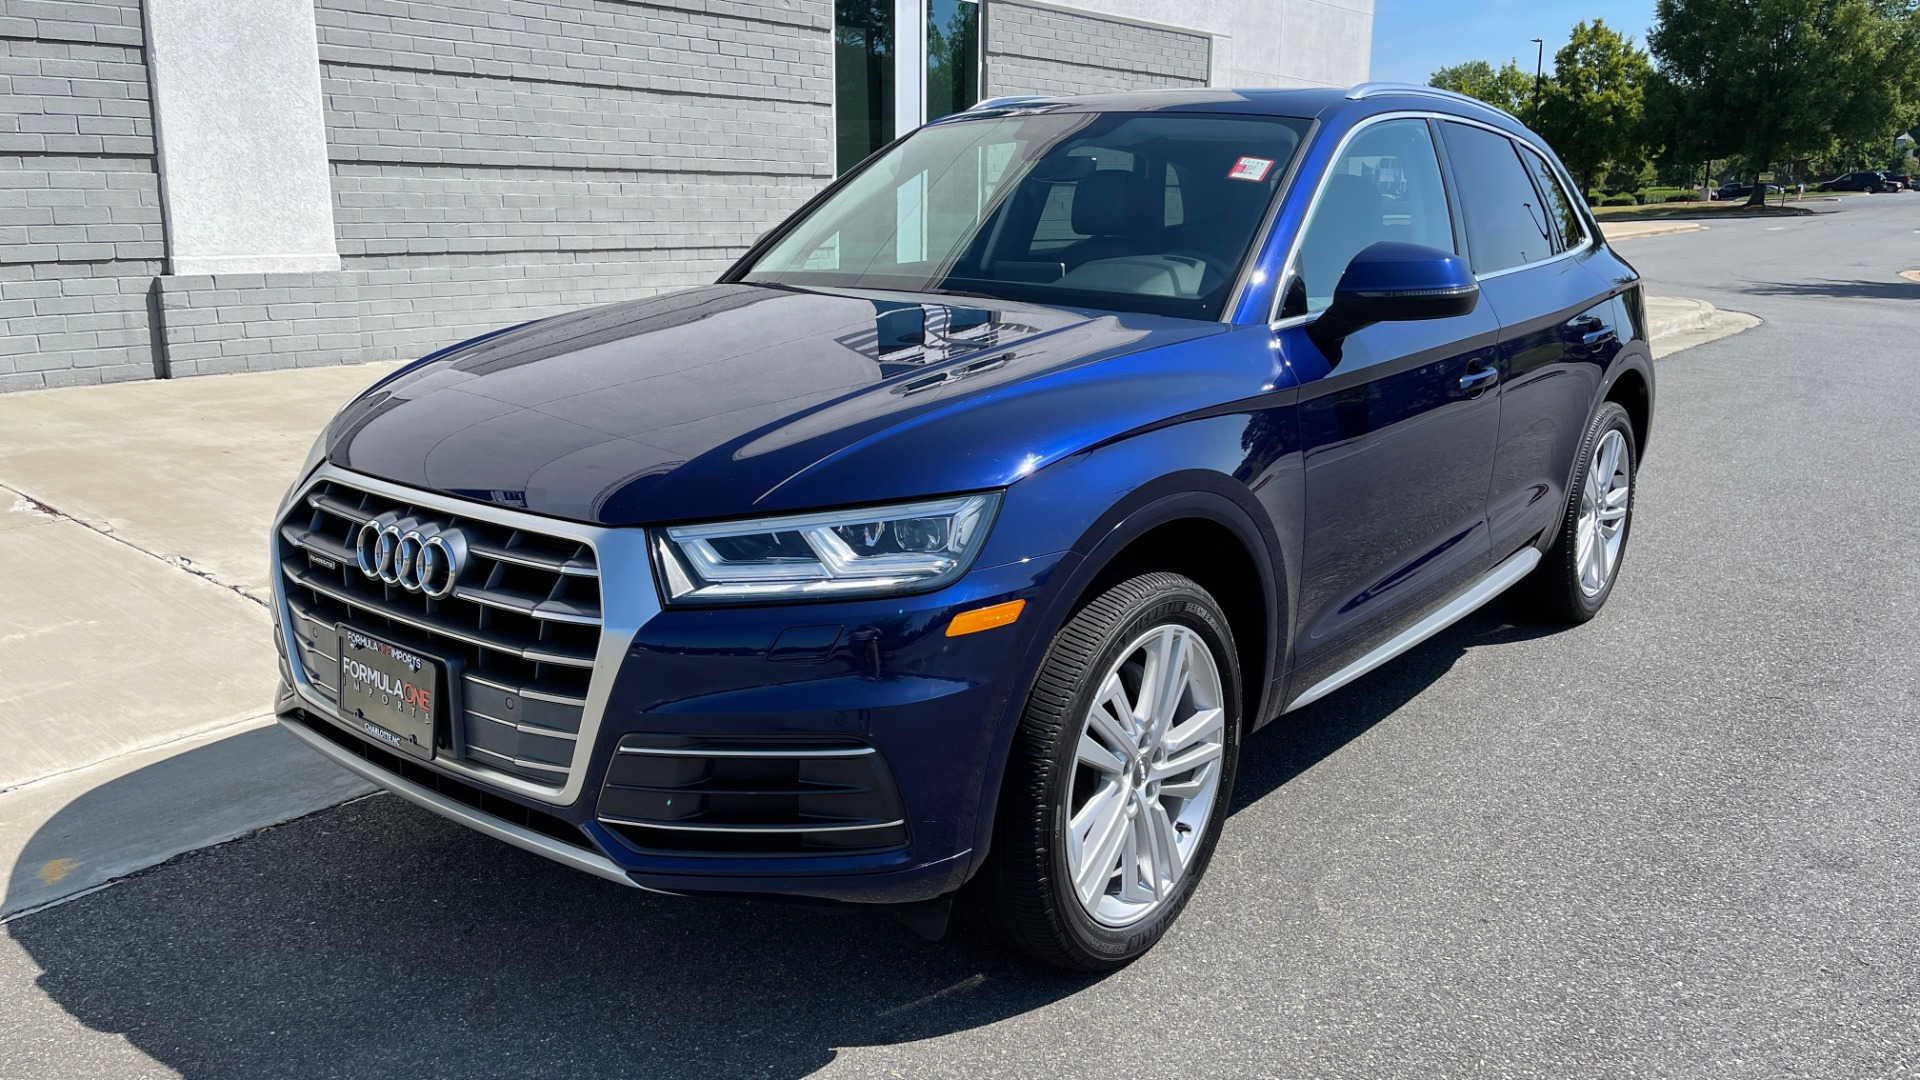 Used 2018 Audi Q5 PREMIUM PLUS / NAV / PANO-ROOF / PARK SYSTEM / REARVIEW for sale $33,695 at Formula Imports in Charlotte NC 28227 3